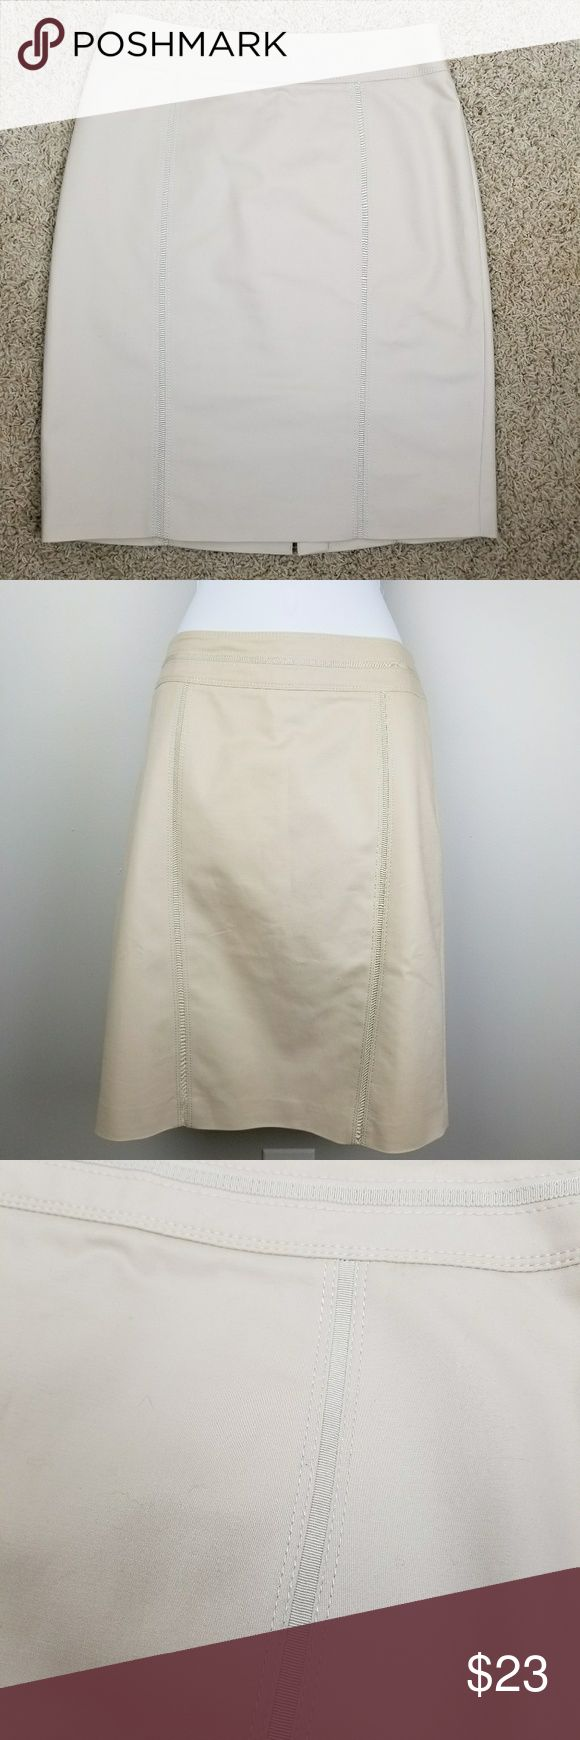 NWOT WHBM khaki pencil skirt of cotton and spandex White House Black Market 98% cotton 2% spandex lined pencil skirt with back vent and vertical grosgrain details. Center back invisible zipper. Knee length. Light khaki or oatmeal color Waist 31  Hips 39 Length 22.75 White House Black Market Skirts Pencil